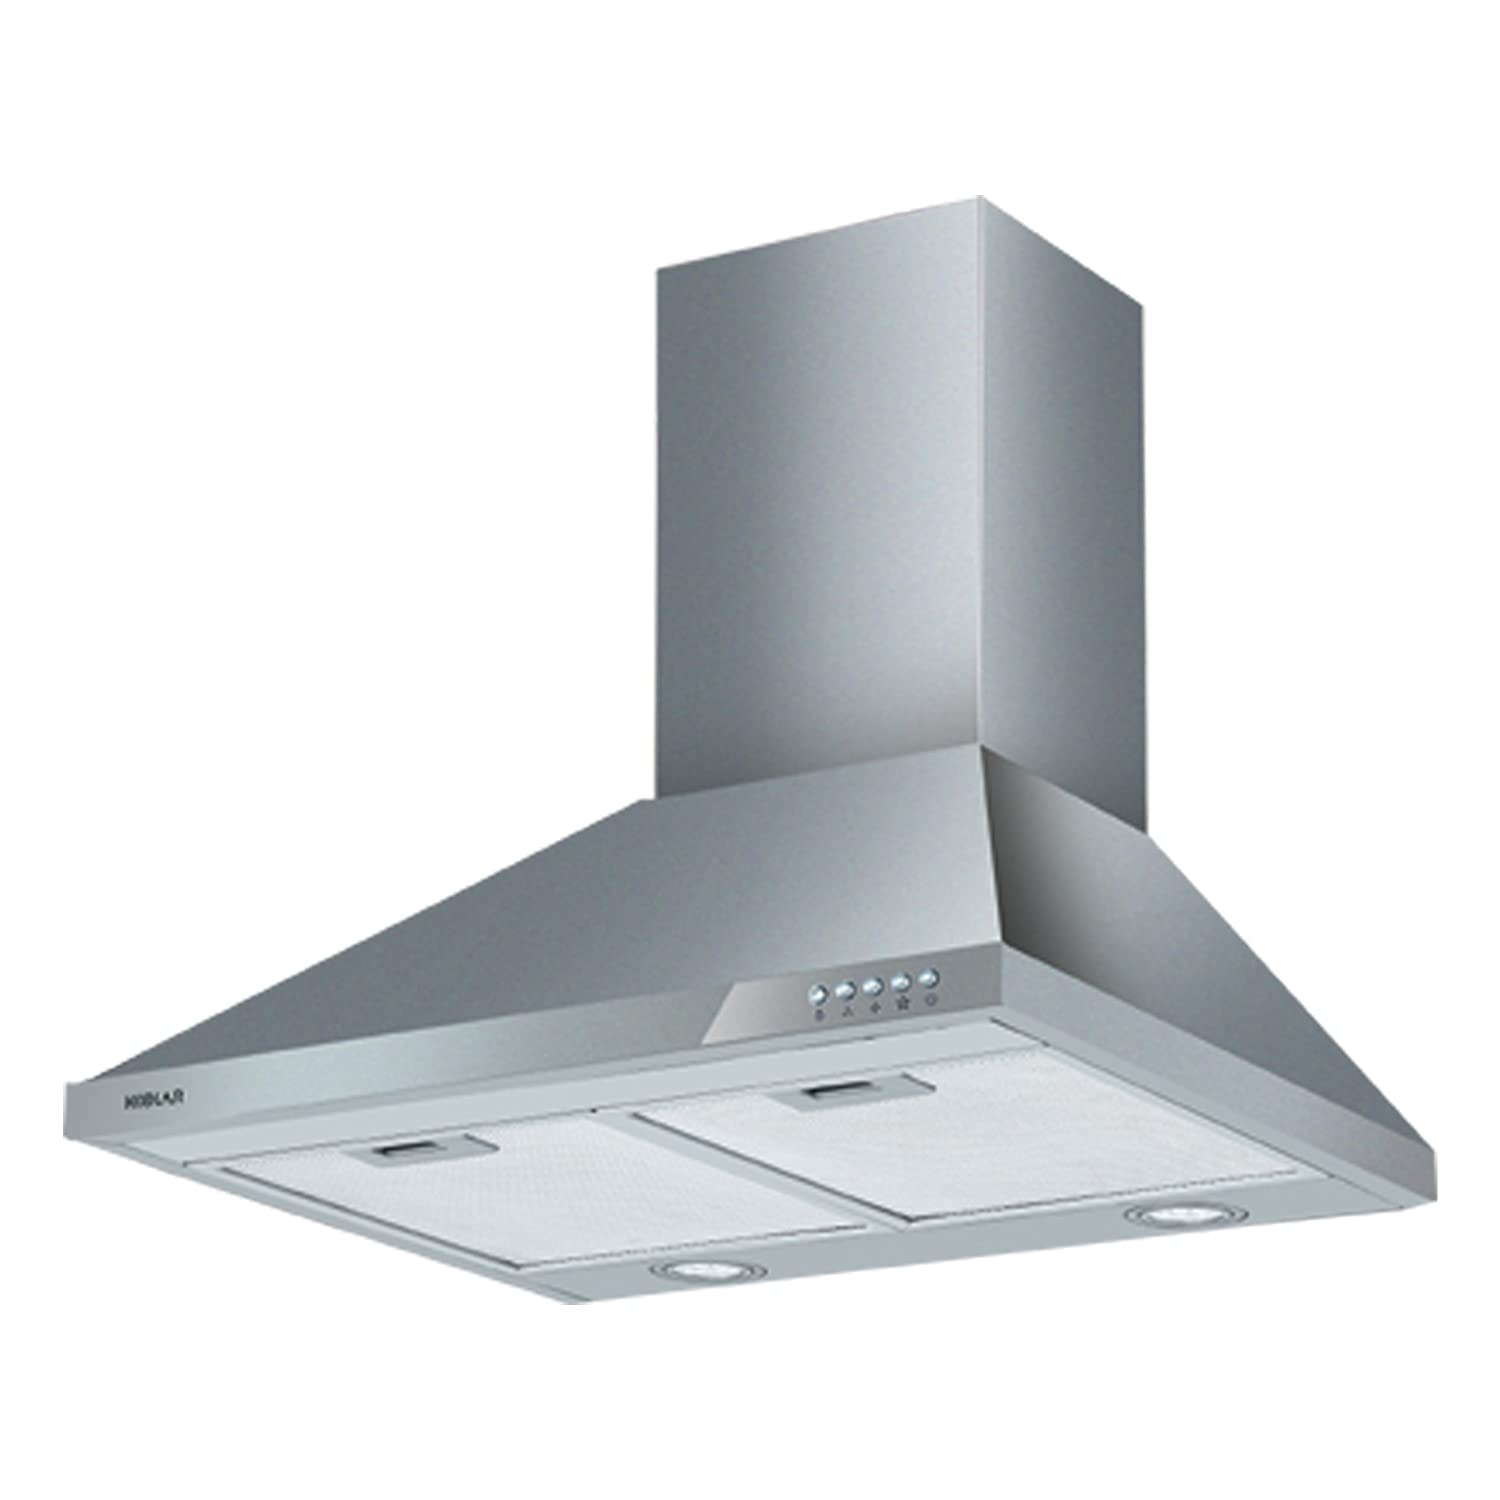 Famous Hindware Kitchen Chimney Price Picture Collection - Modern ...